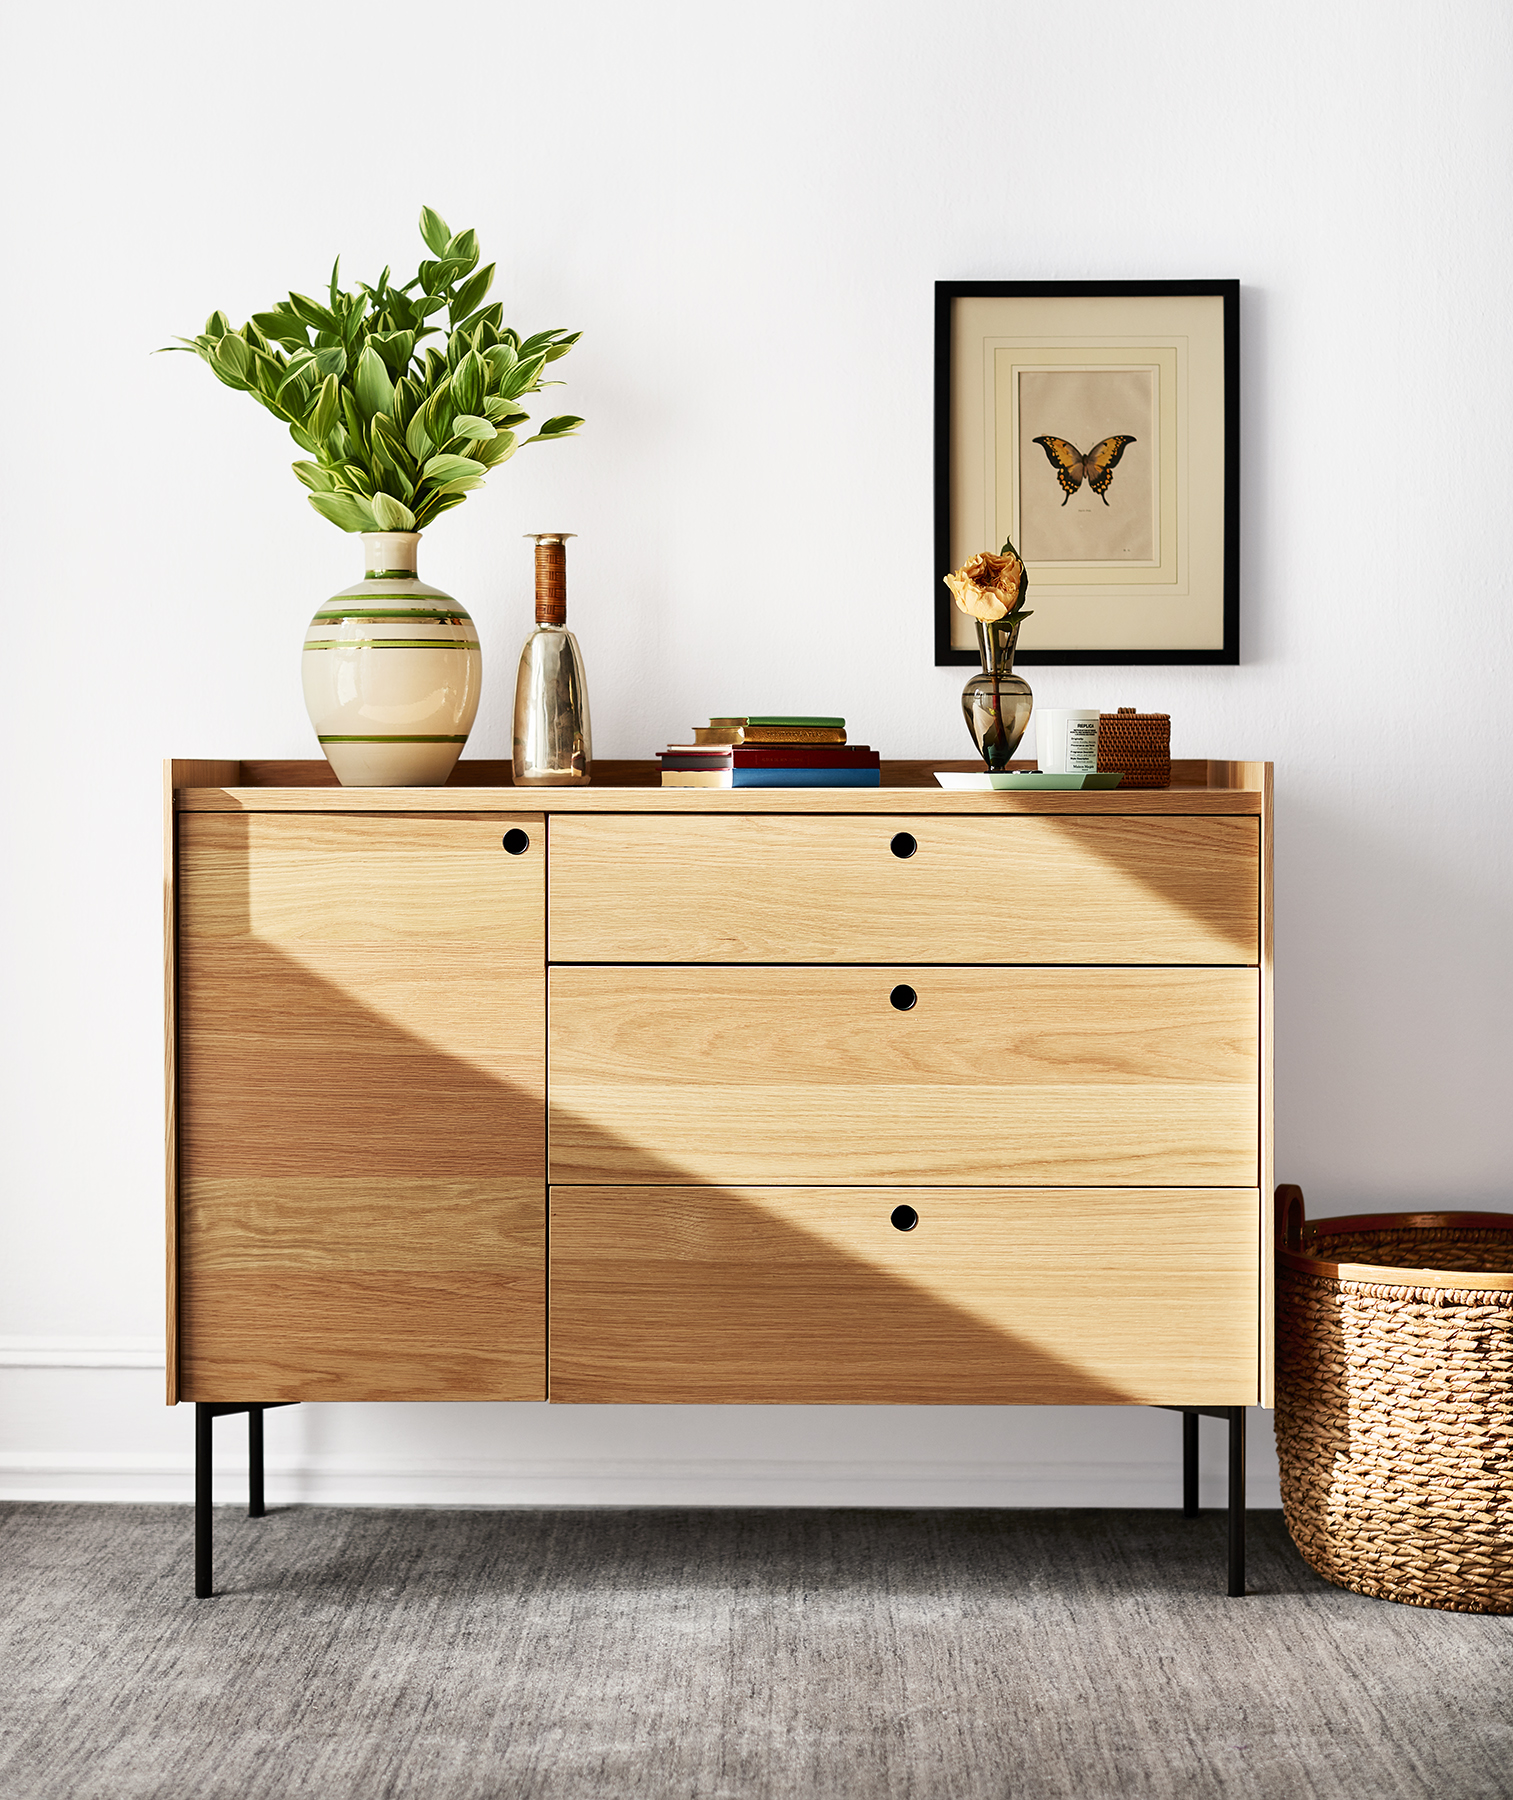 Dresser with plant, art, woven bin